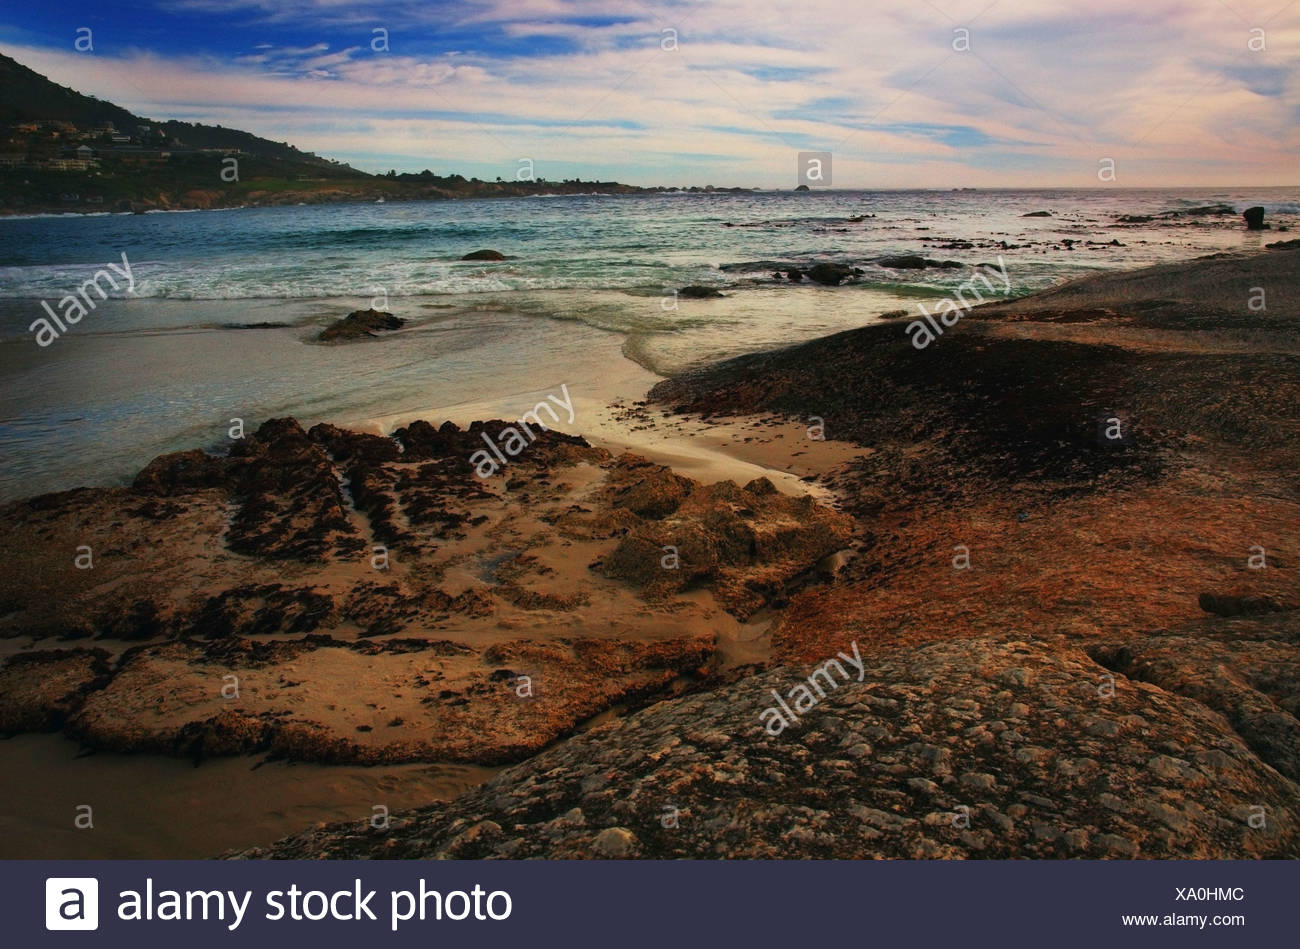 Shoreline with rocky terrain - Stock Image